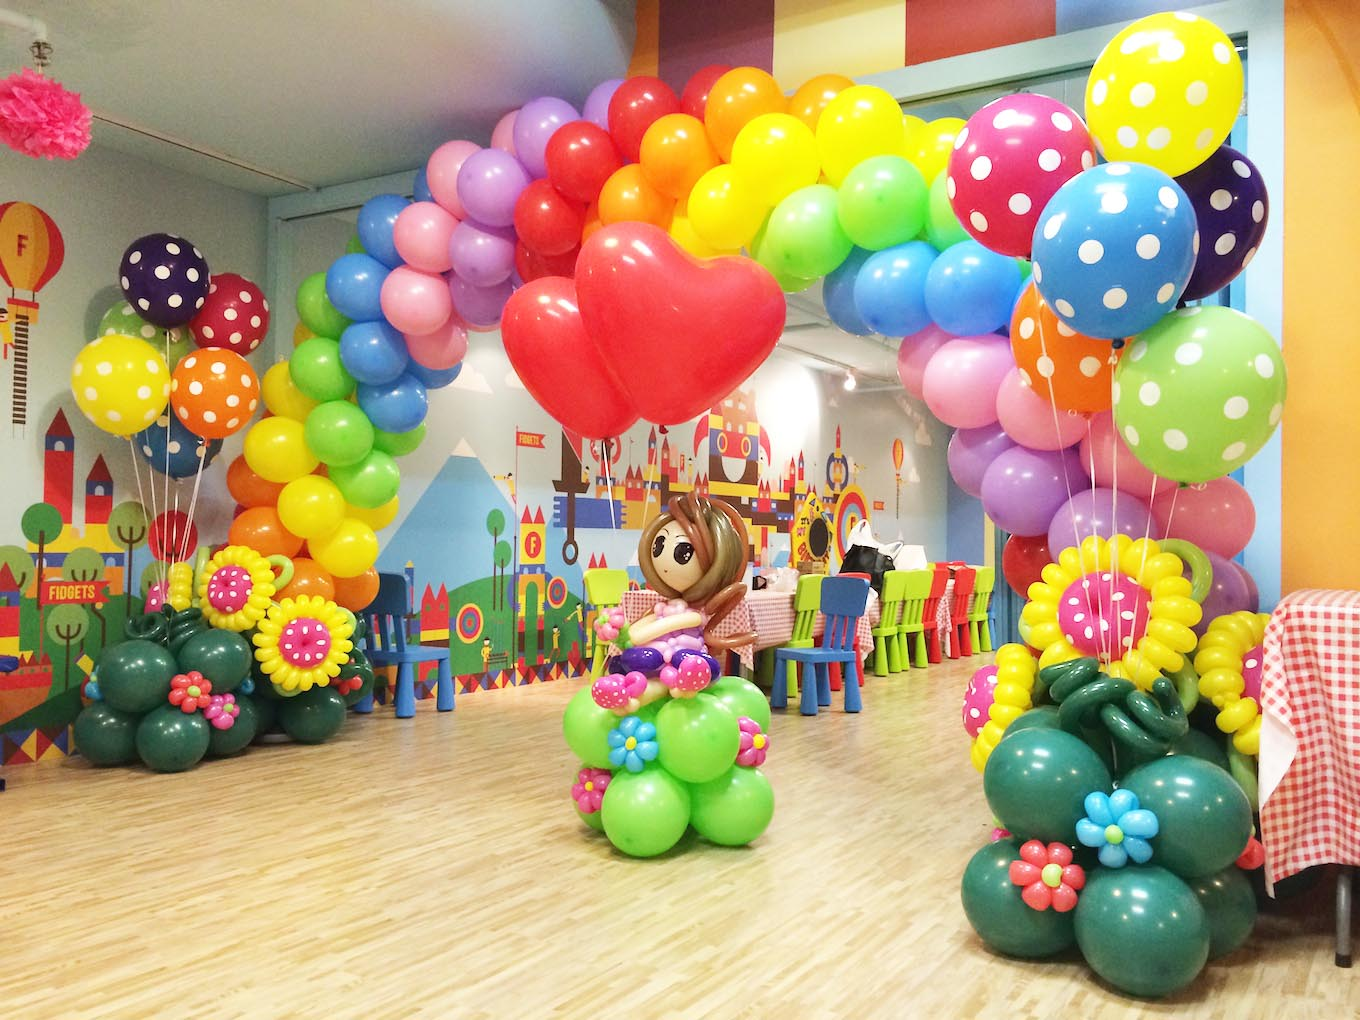 Cheapest balloon decorations for birthday party party for Balloon decoration ideas for birthday party